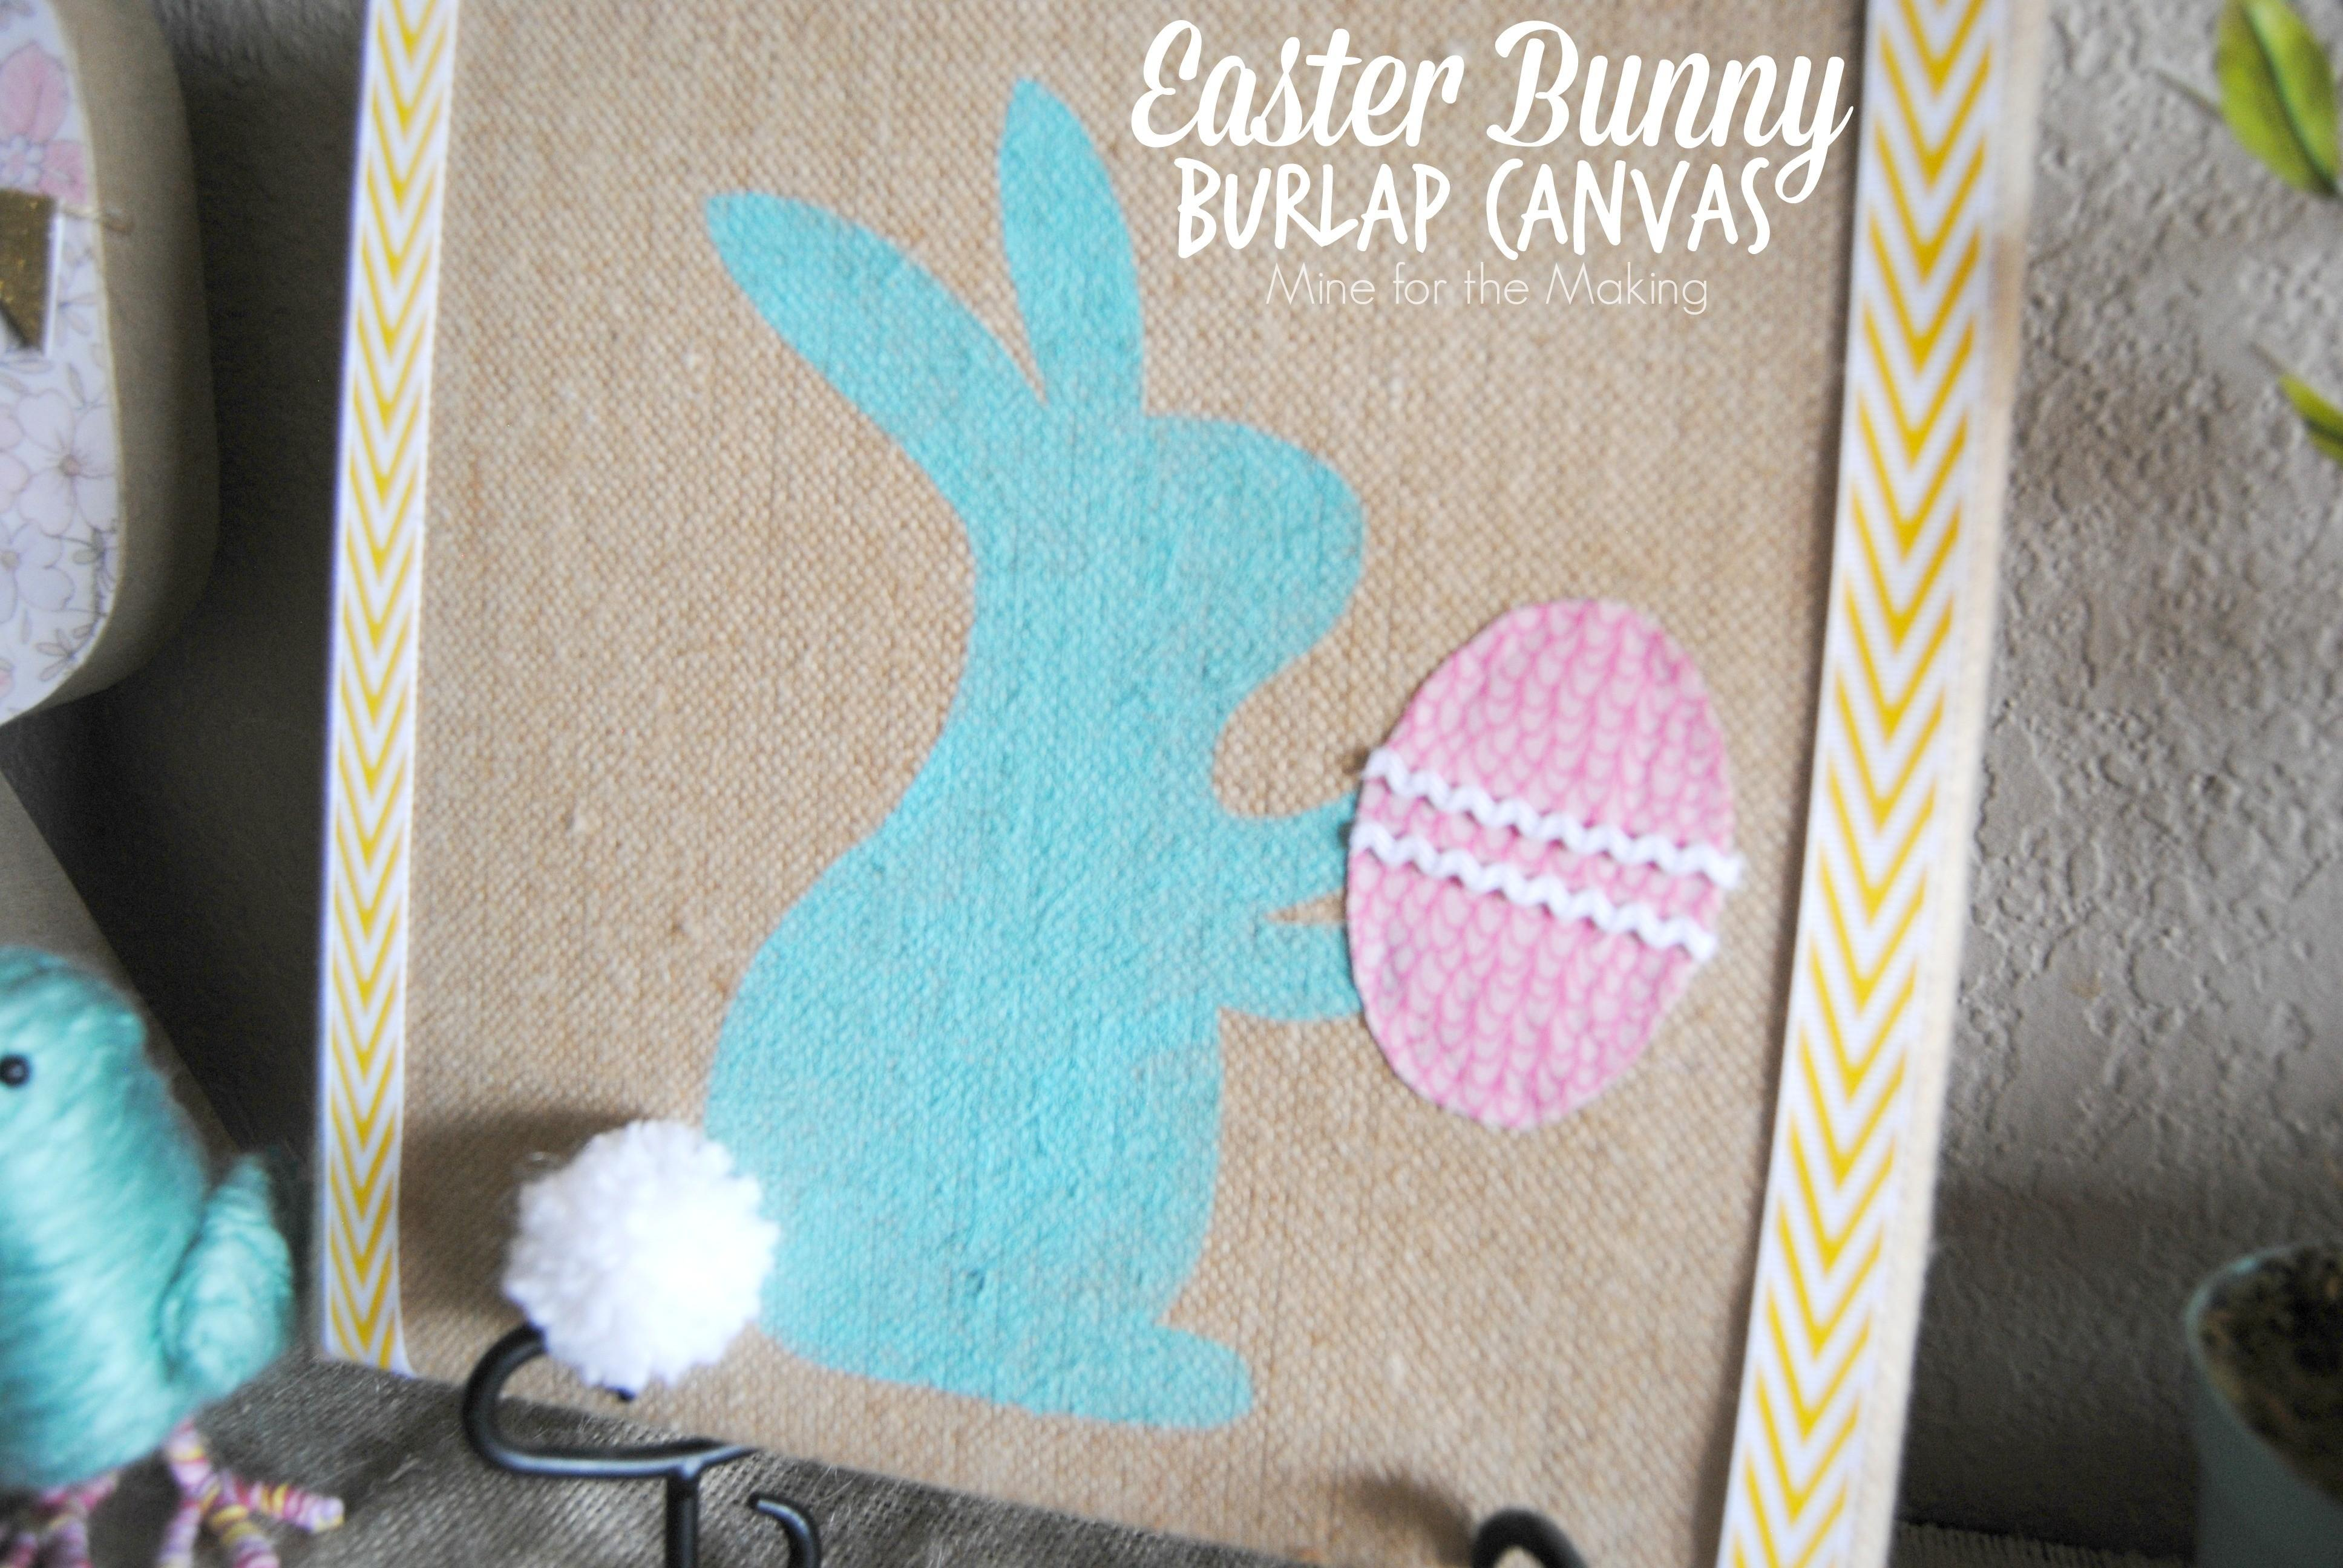 Easter Bunny Burlap Canvas Mine Making